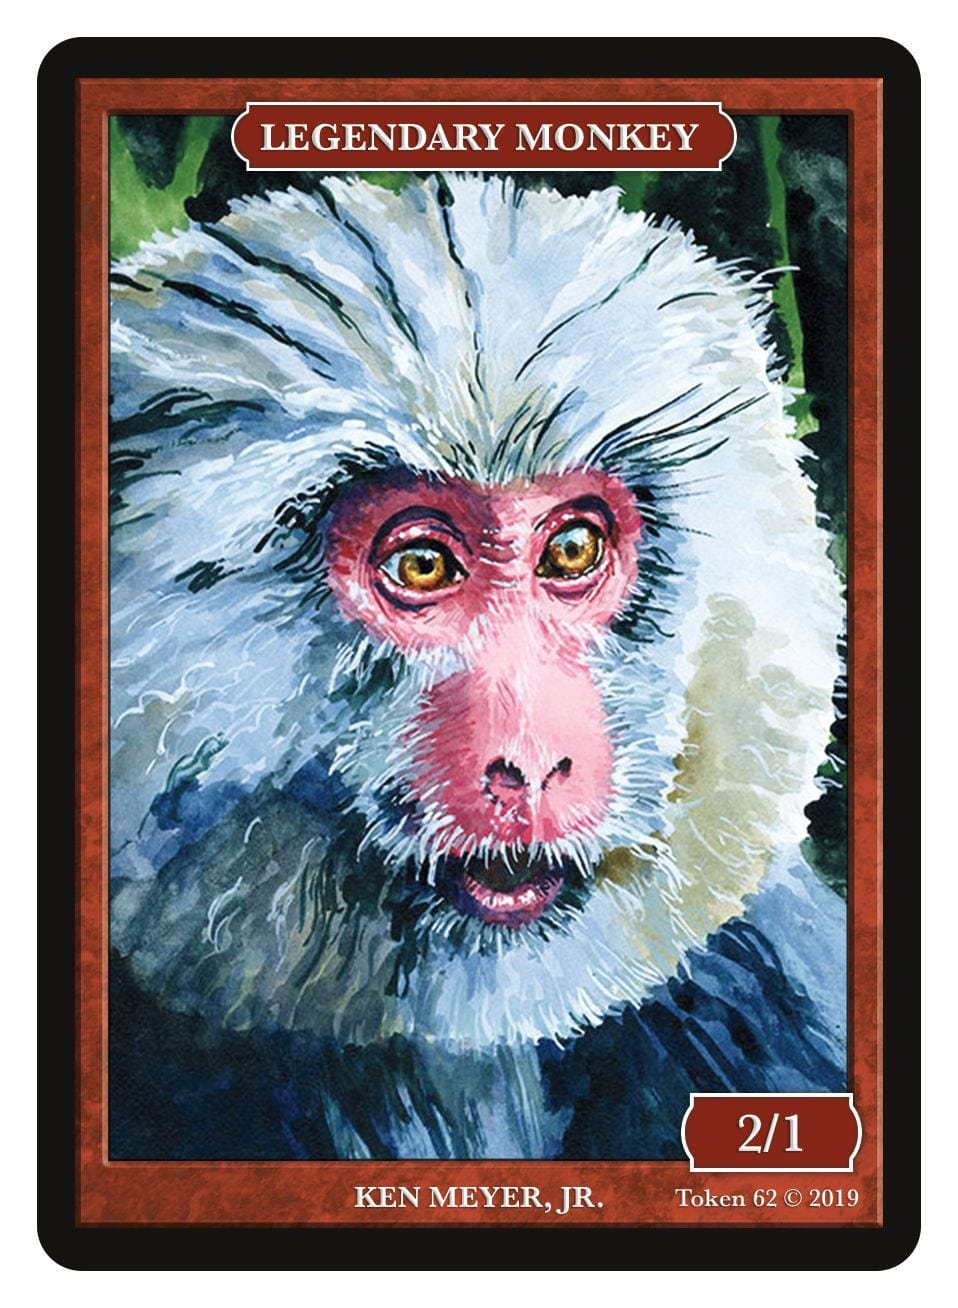 Legendary Monkey Token (2/1) by Ken Meyer Jr.